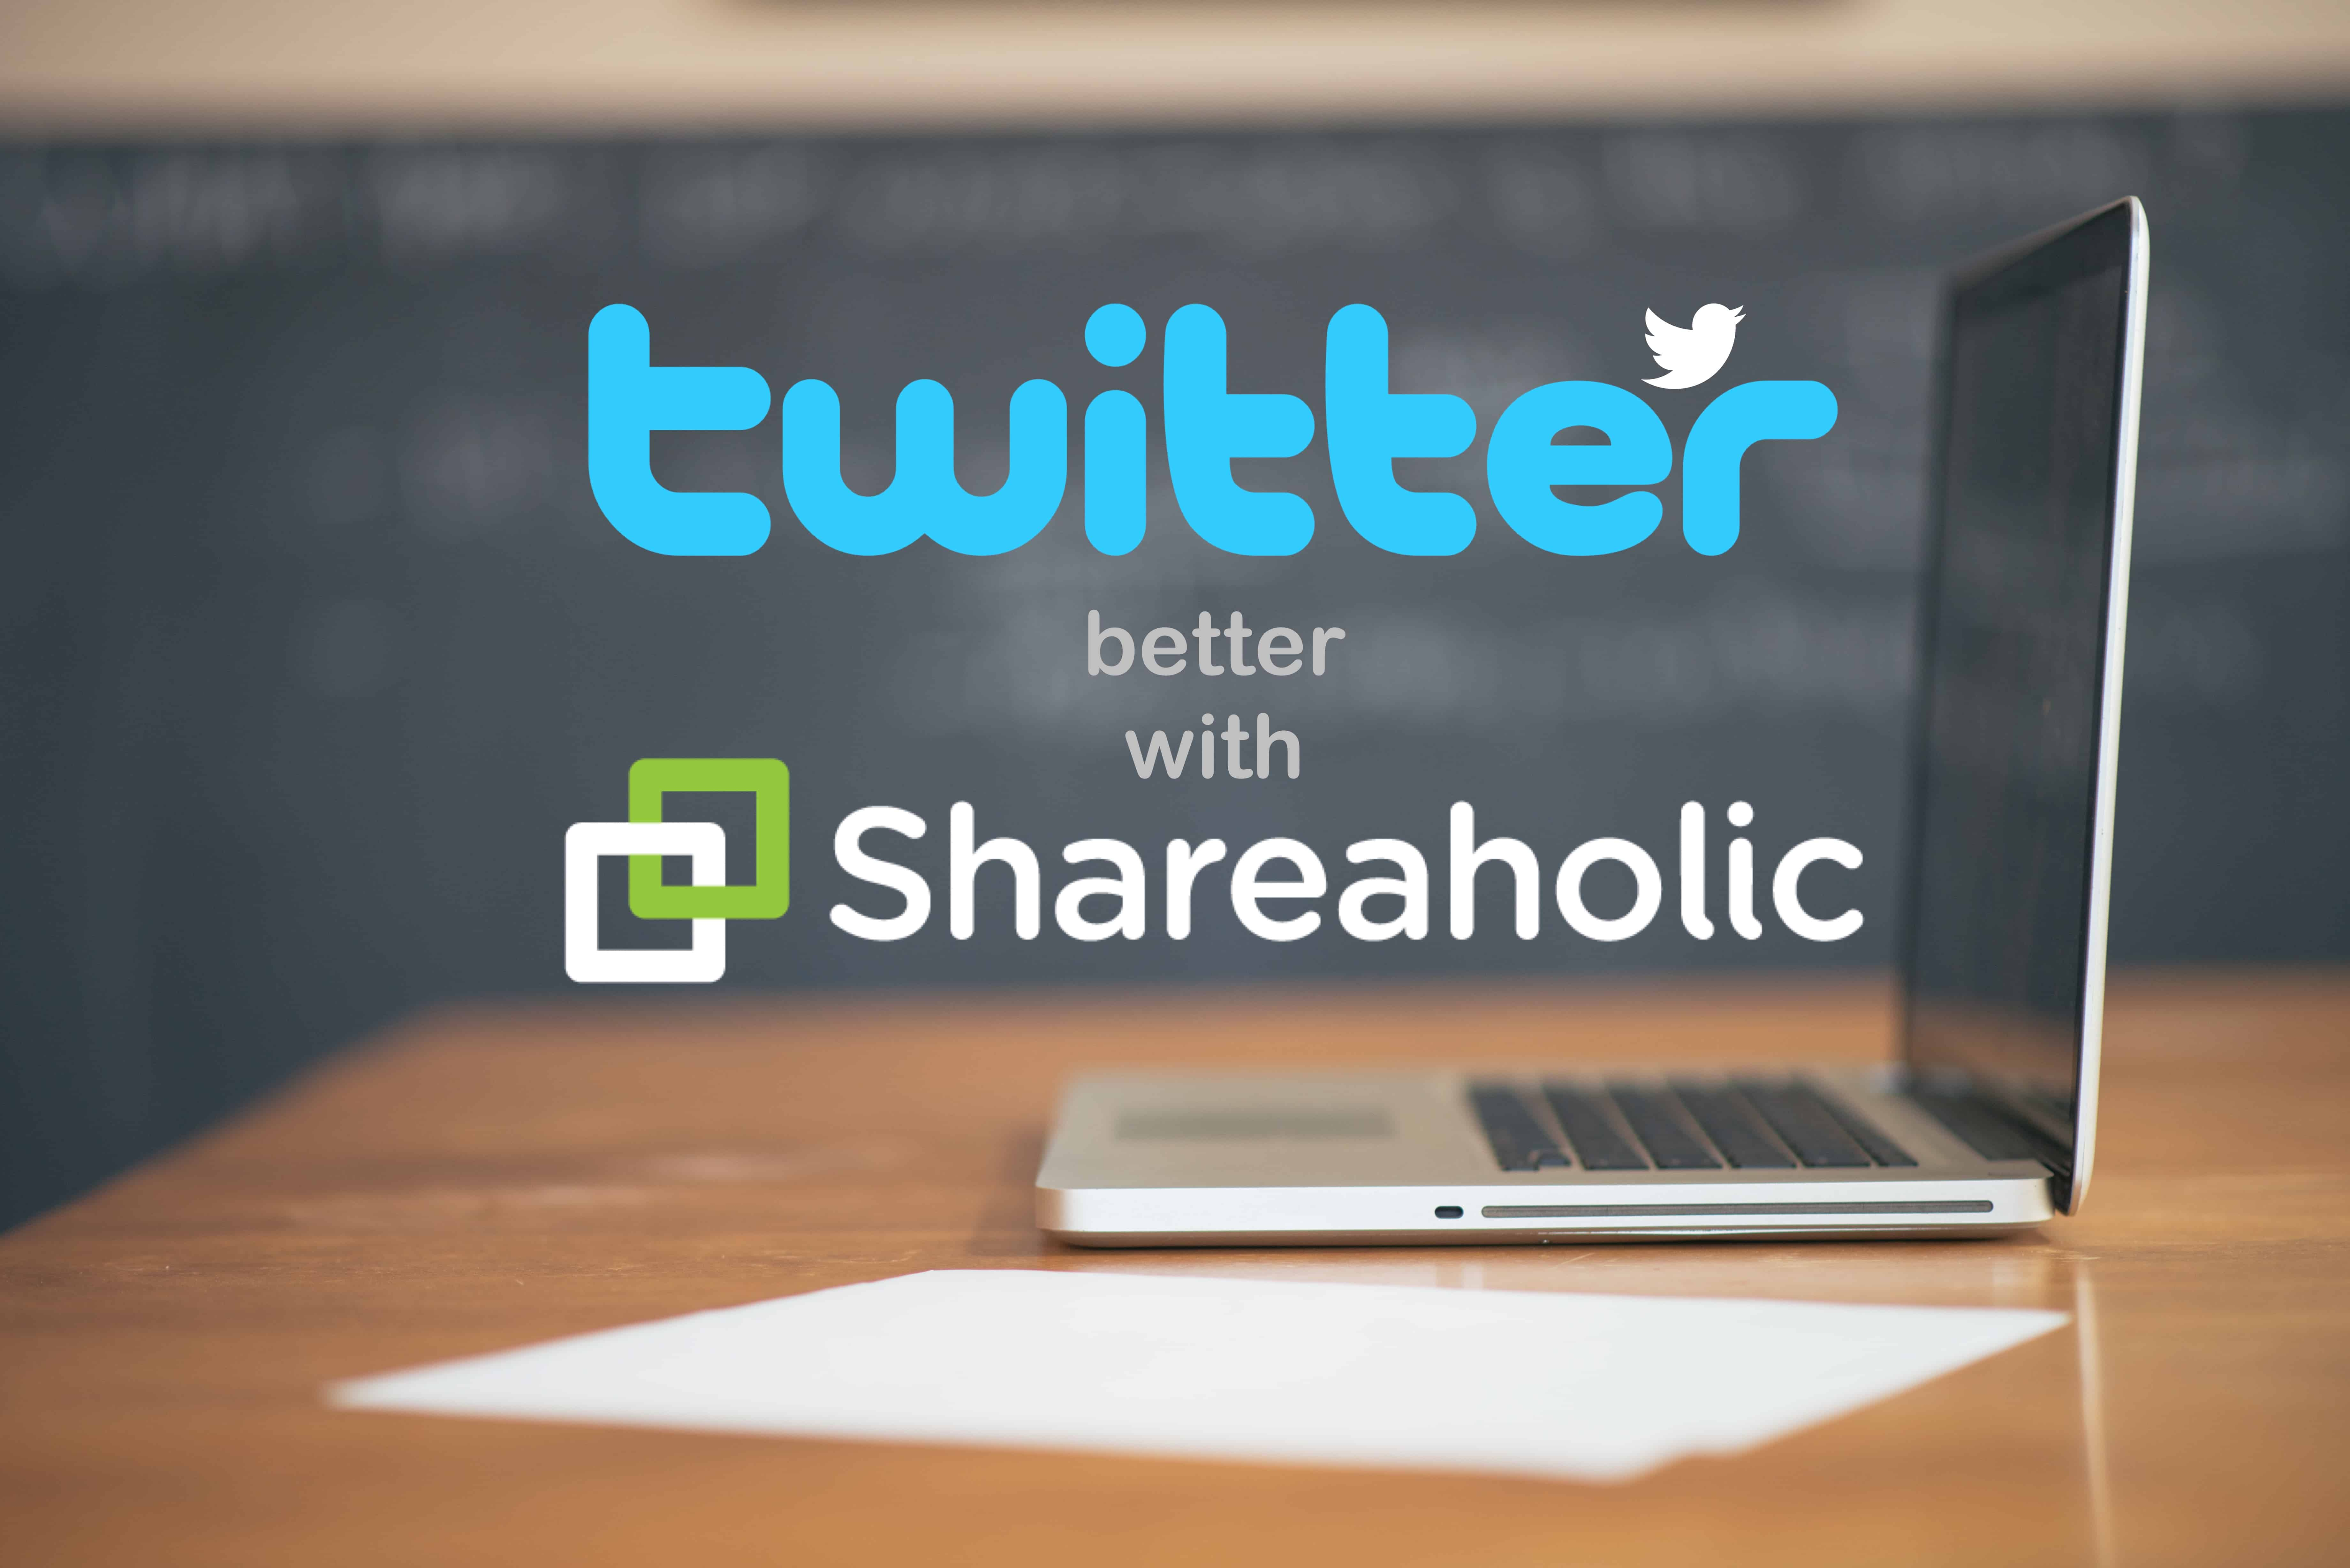 Twitter_Better_with_Shareaholic